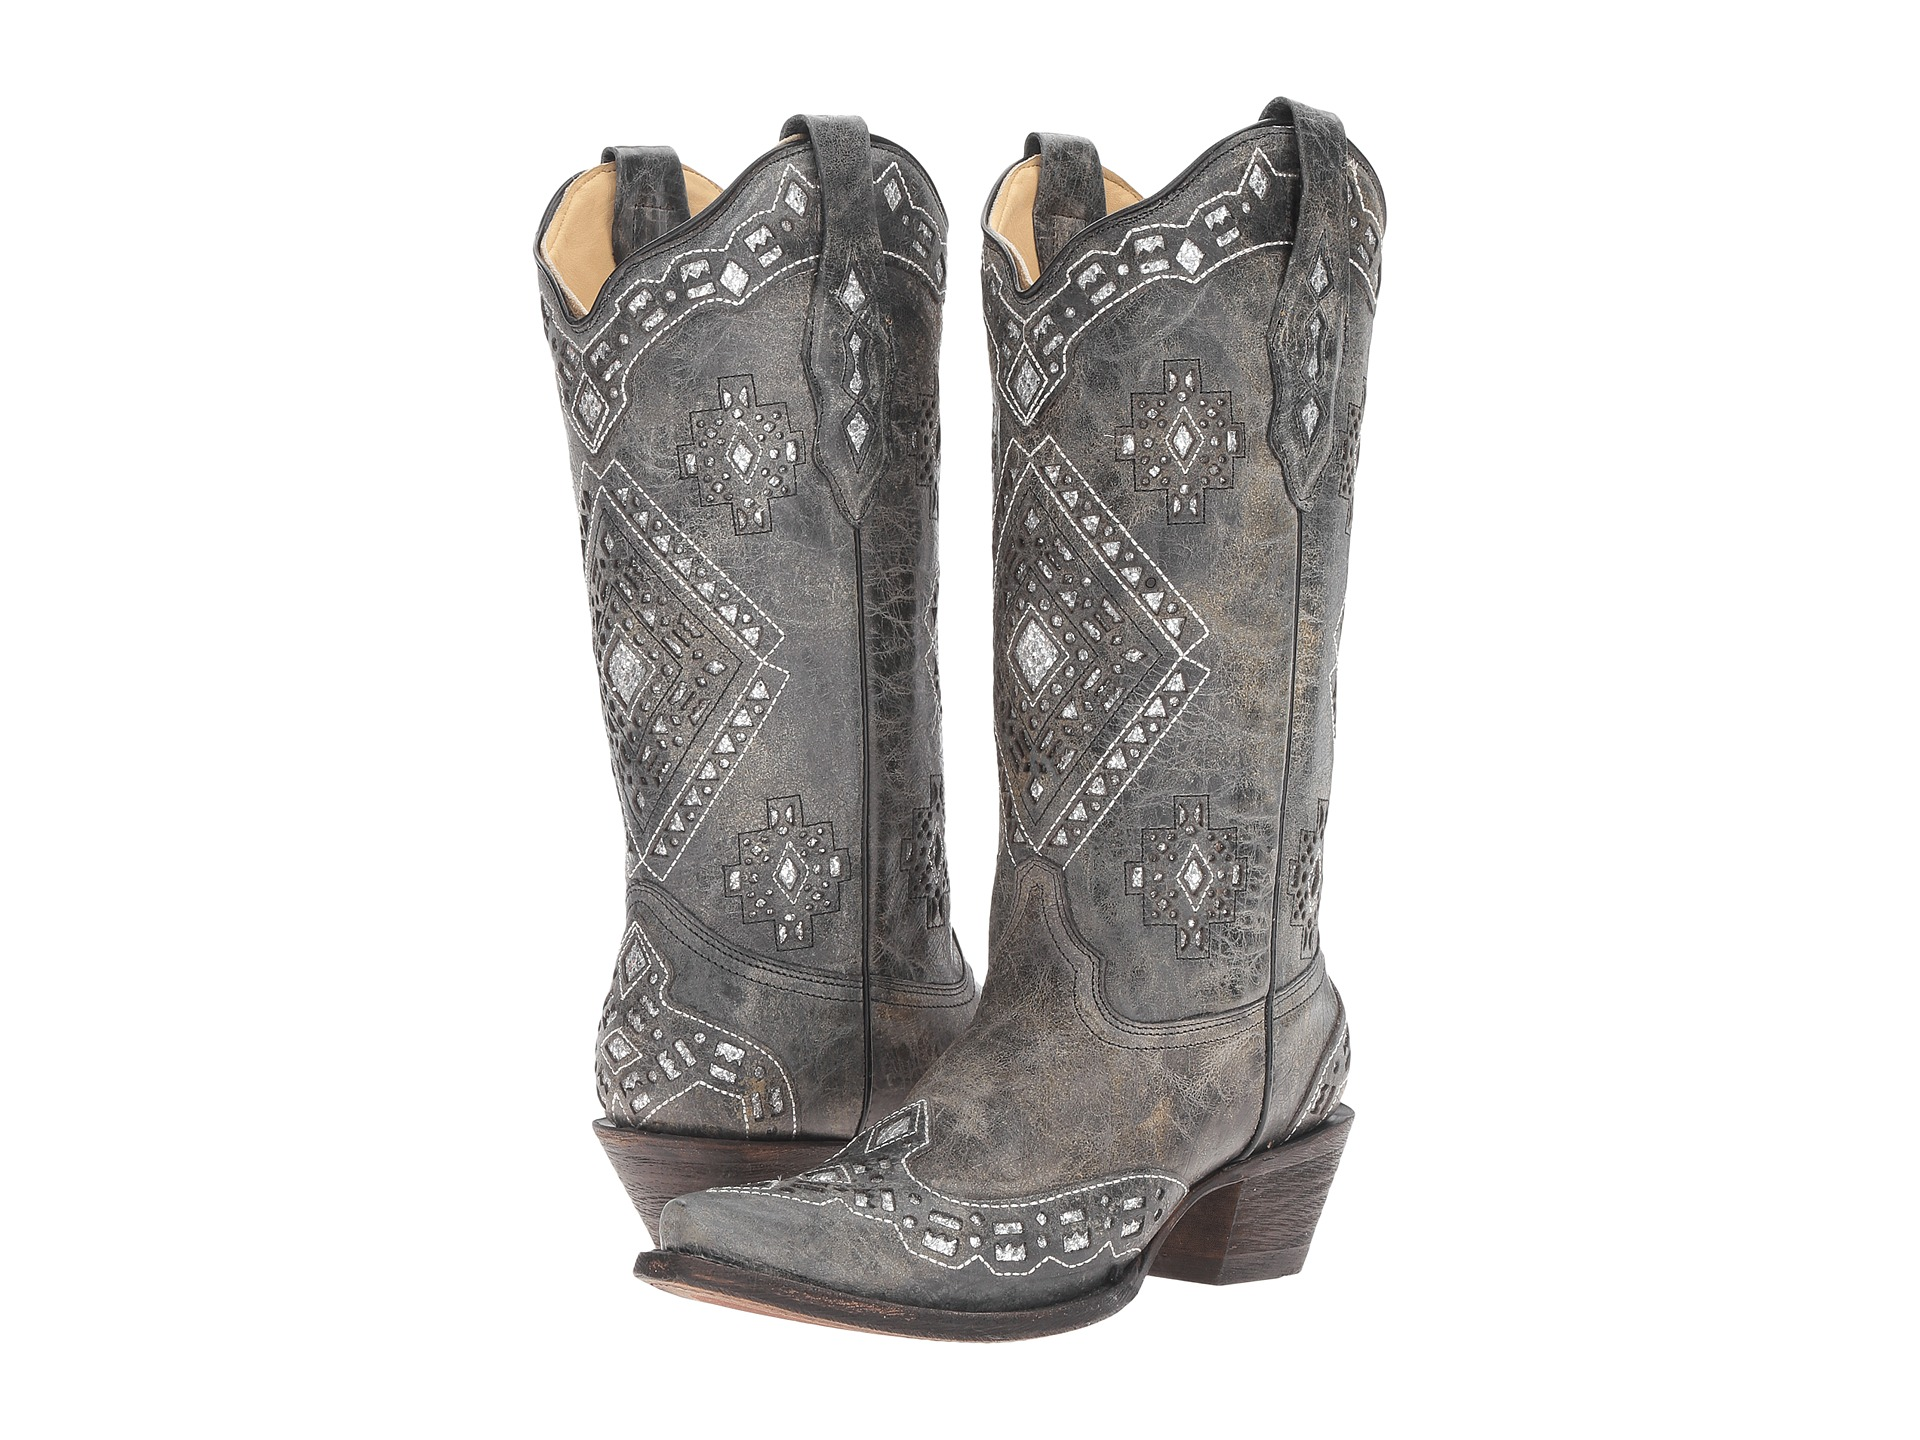 Boots, Cowboy Boots, Black, Women | Shipped Free at Zappos